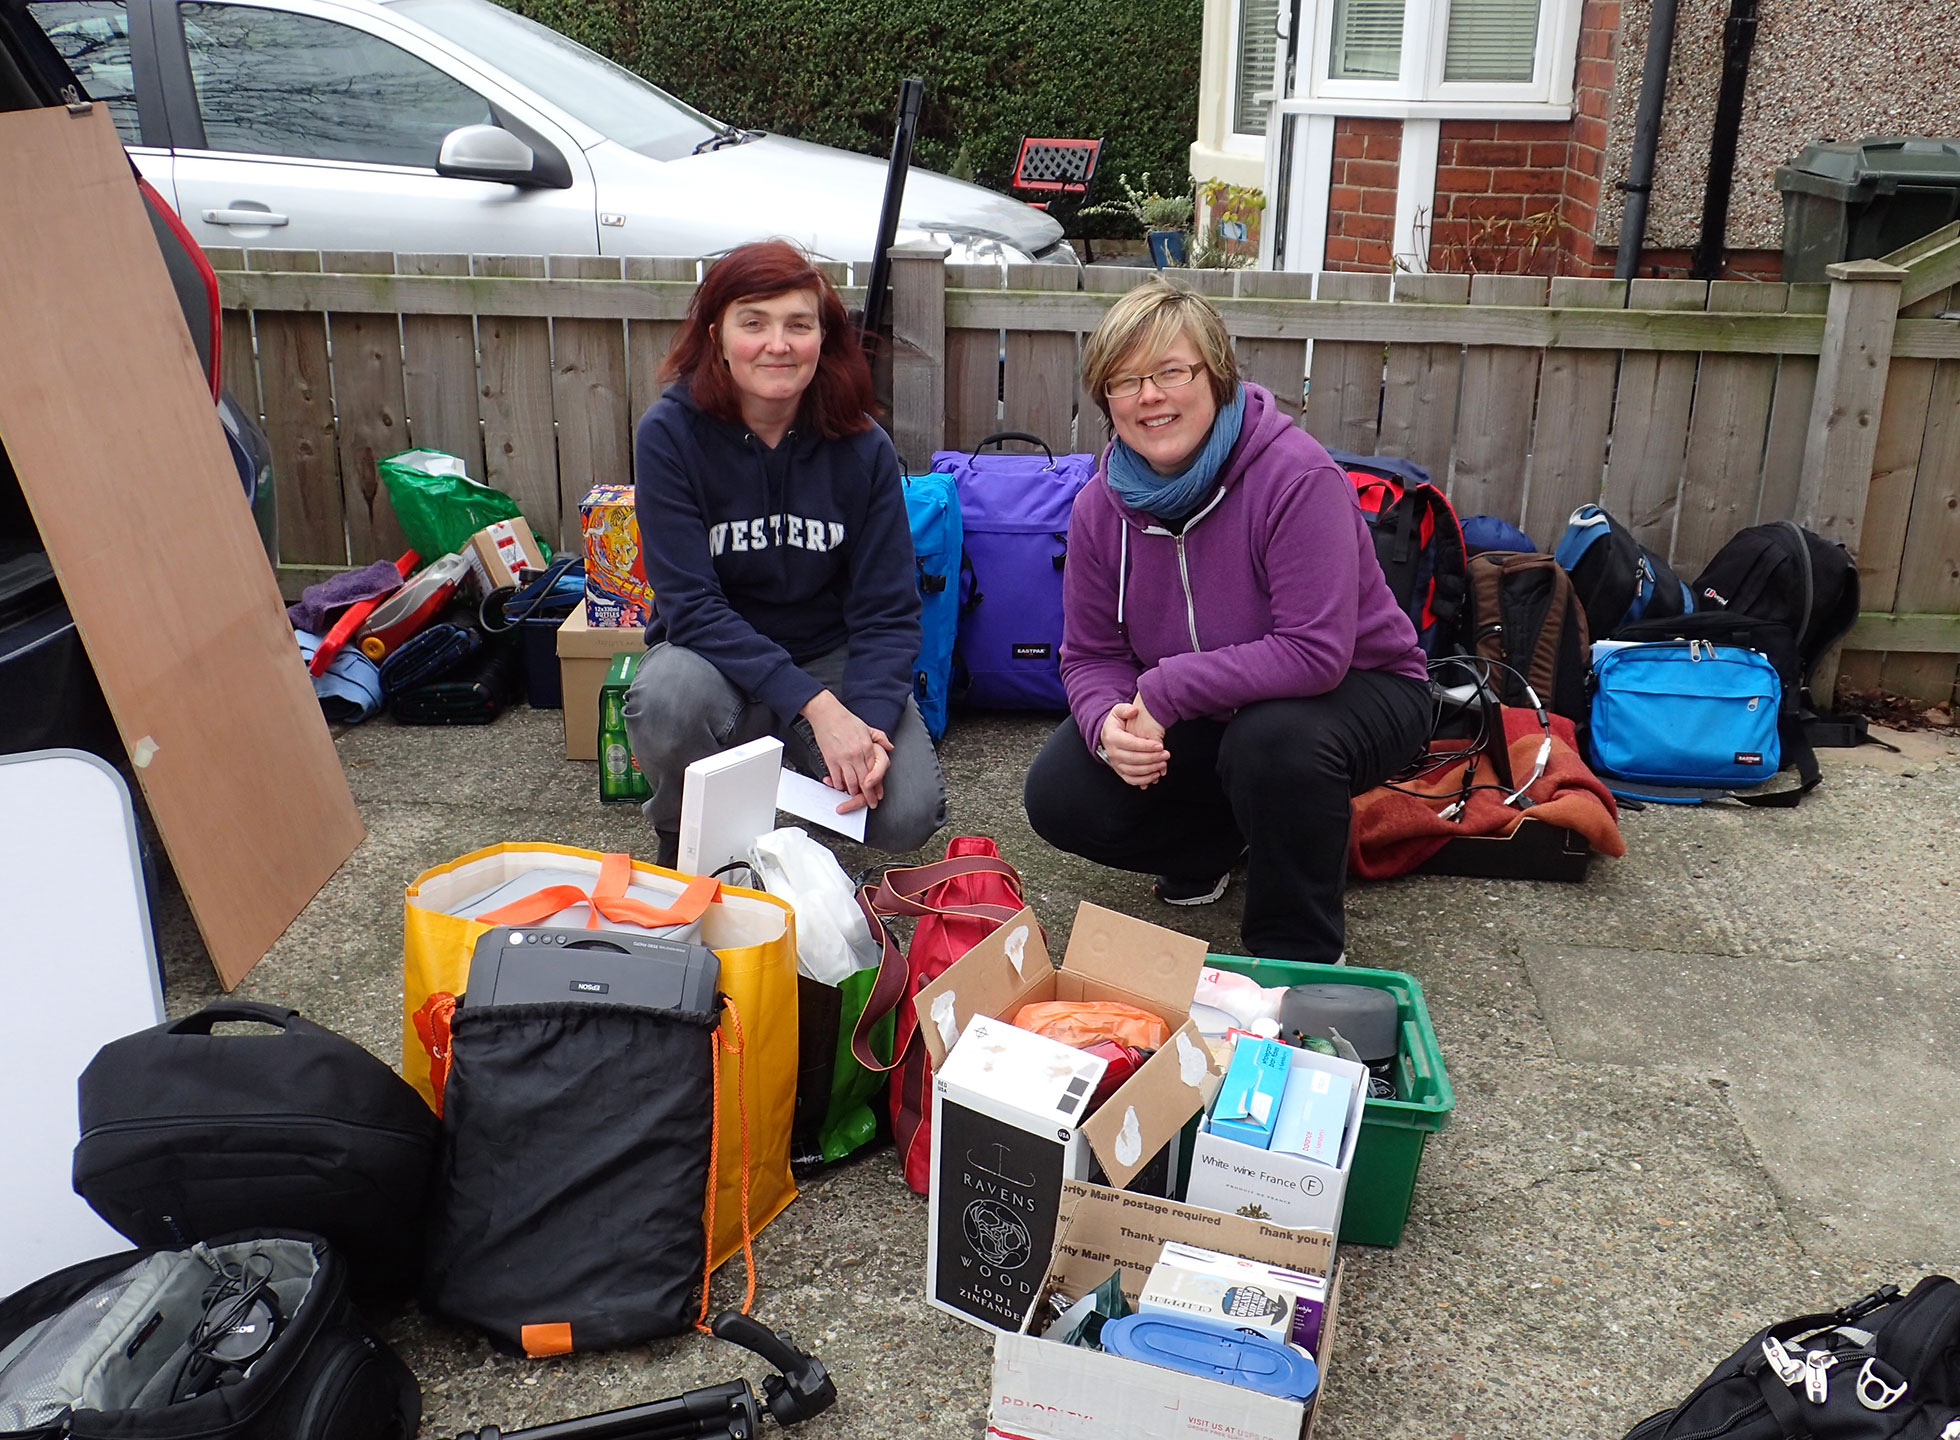 Mel and Lisa packing the car for Beadnell